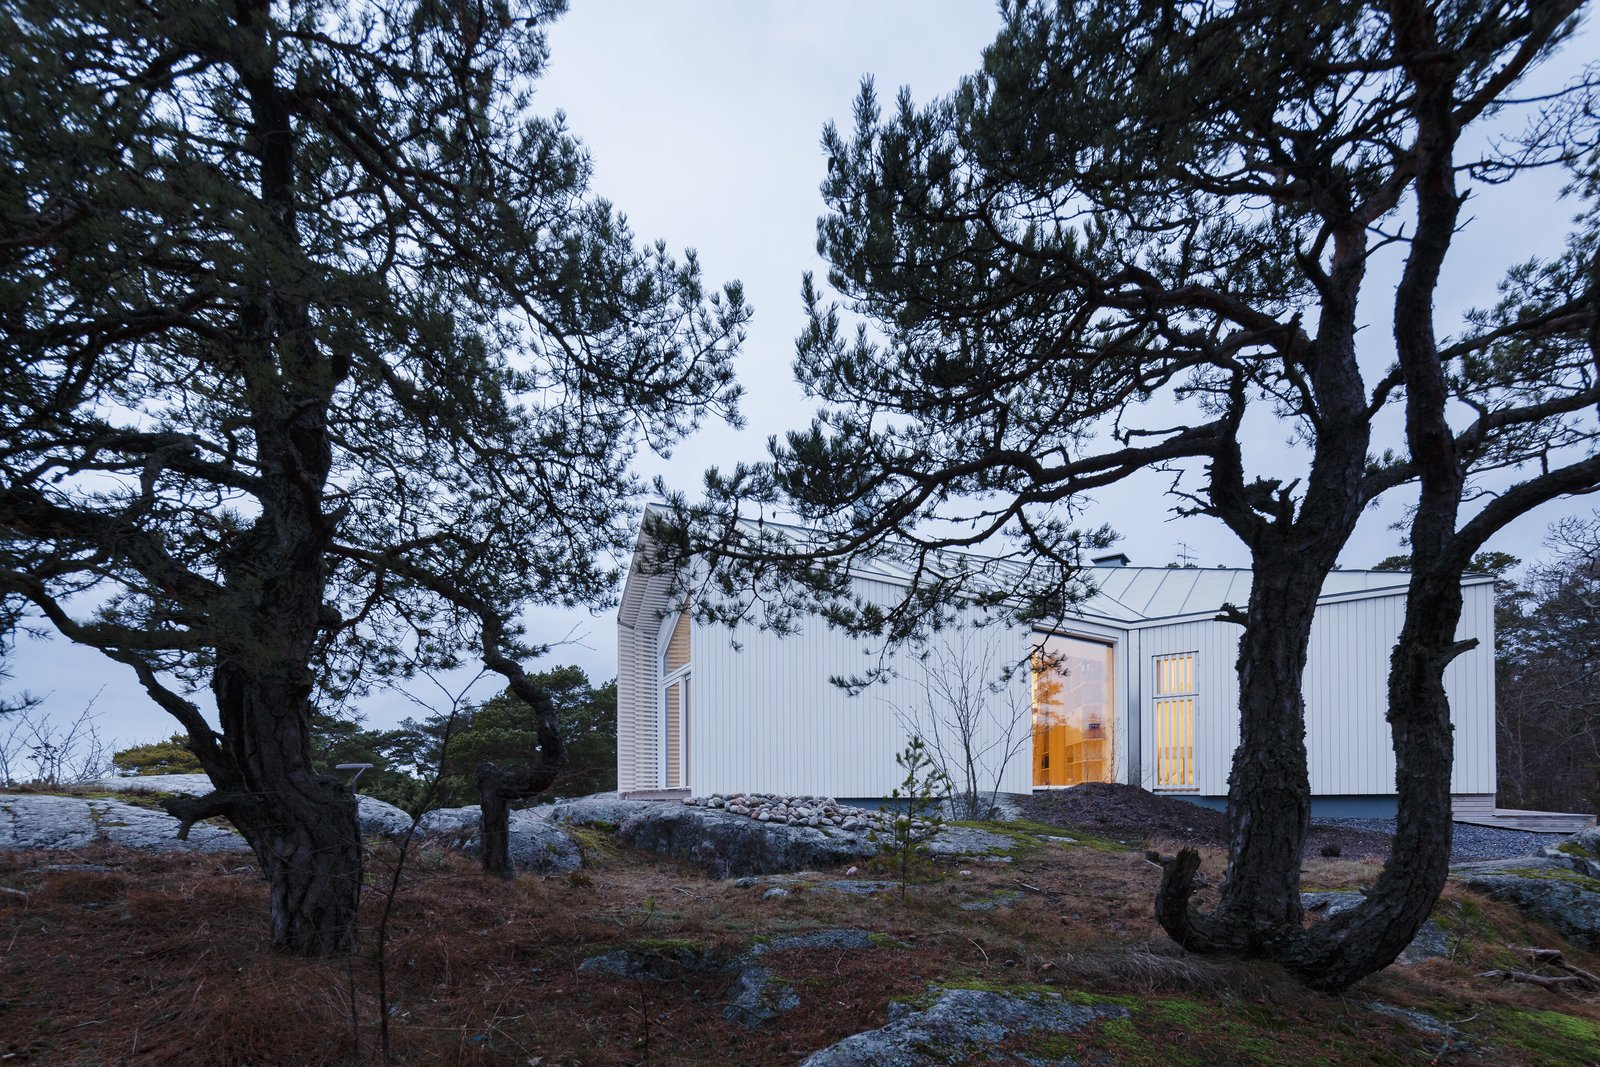 Outdoor  Photo 2 of 12 in A Modern Finnish Villa That Grows Out of a Seaside Cliff